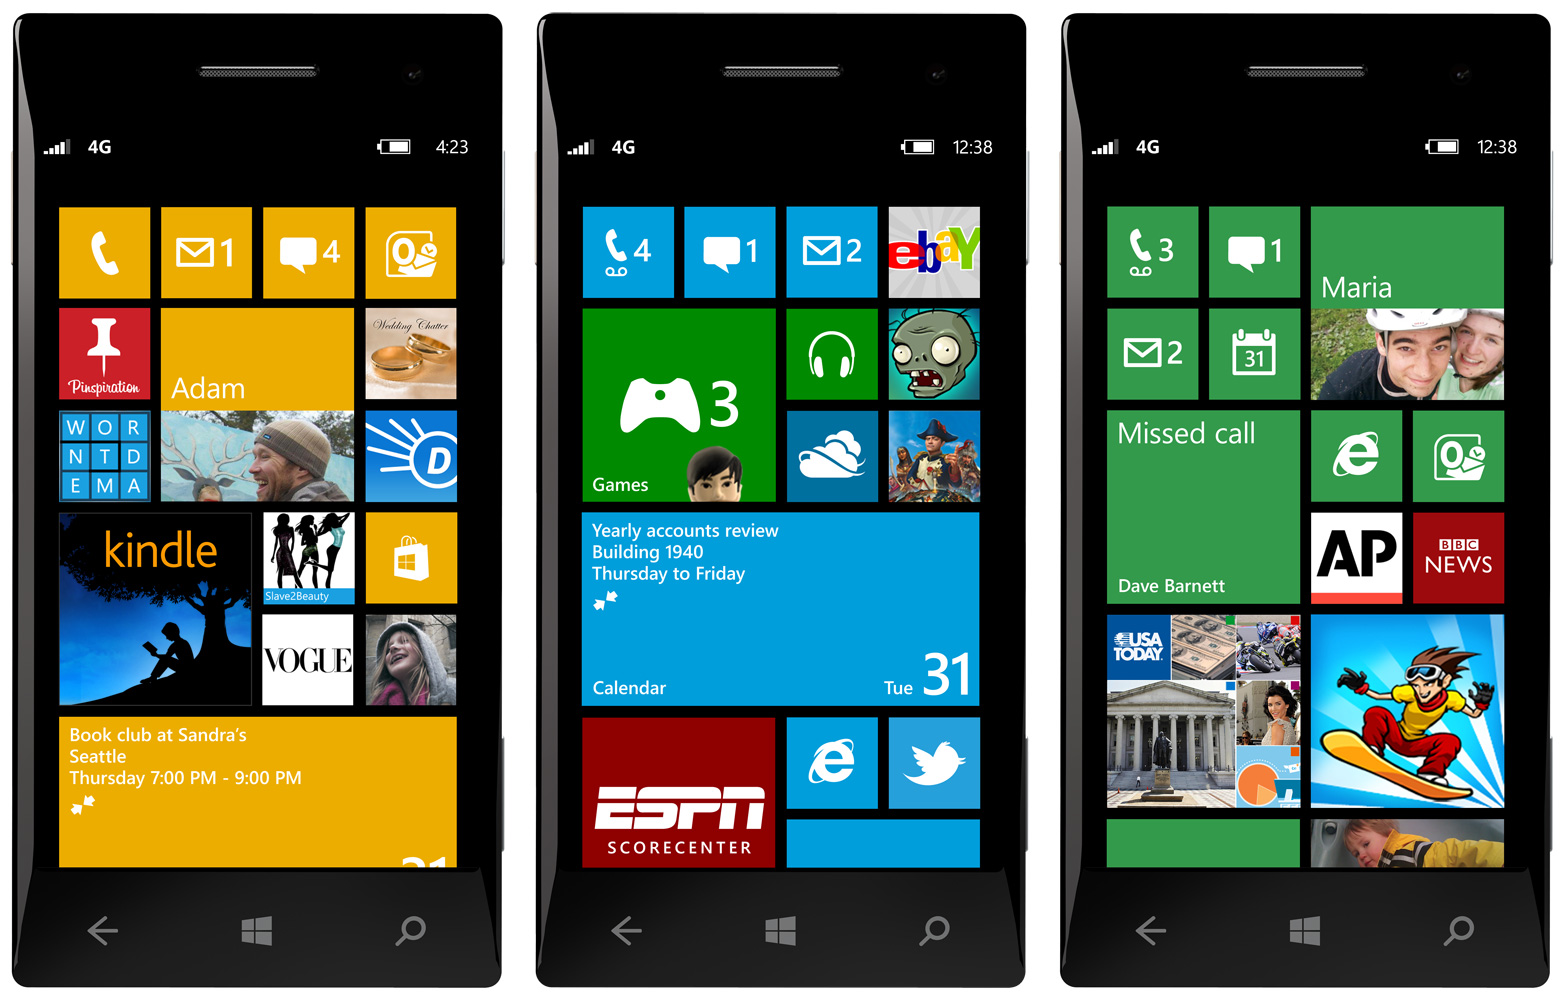 Windows Phone 8 Gets a Huge Gaming Boost with Unity3D Graphics Engine Support